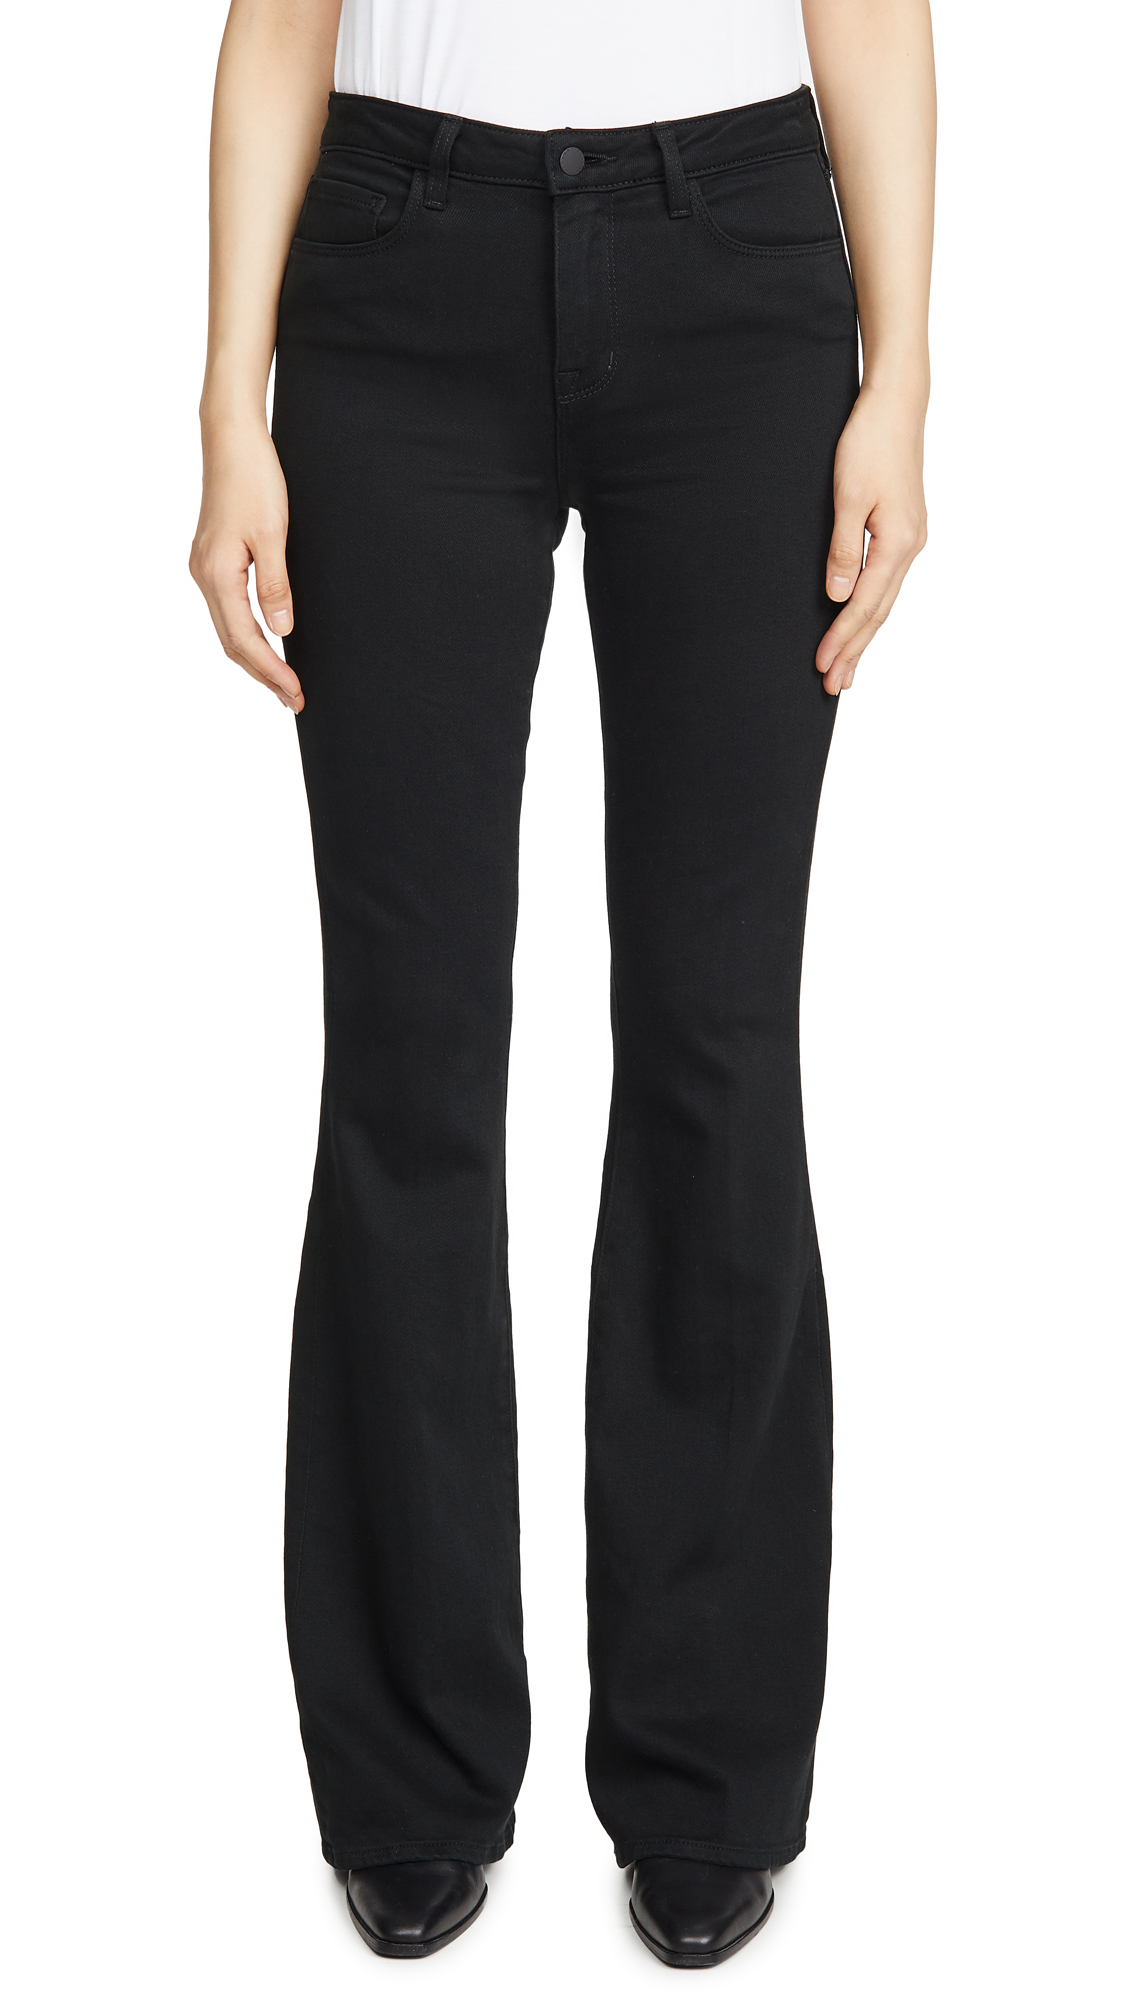 L'AGENCE Bell High Rise Flare Jeans